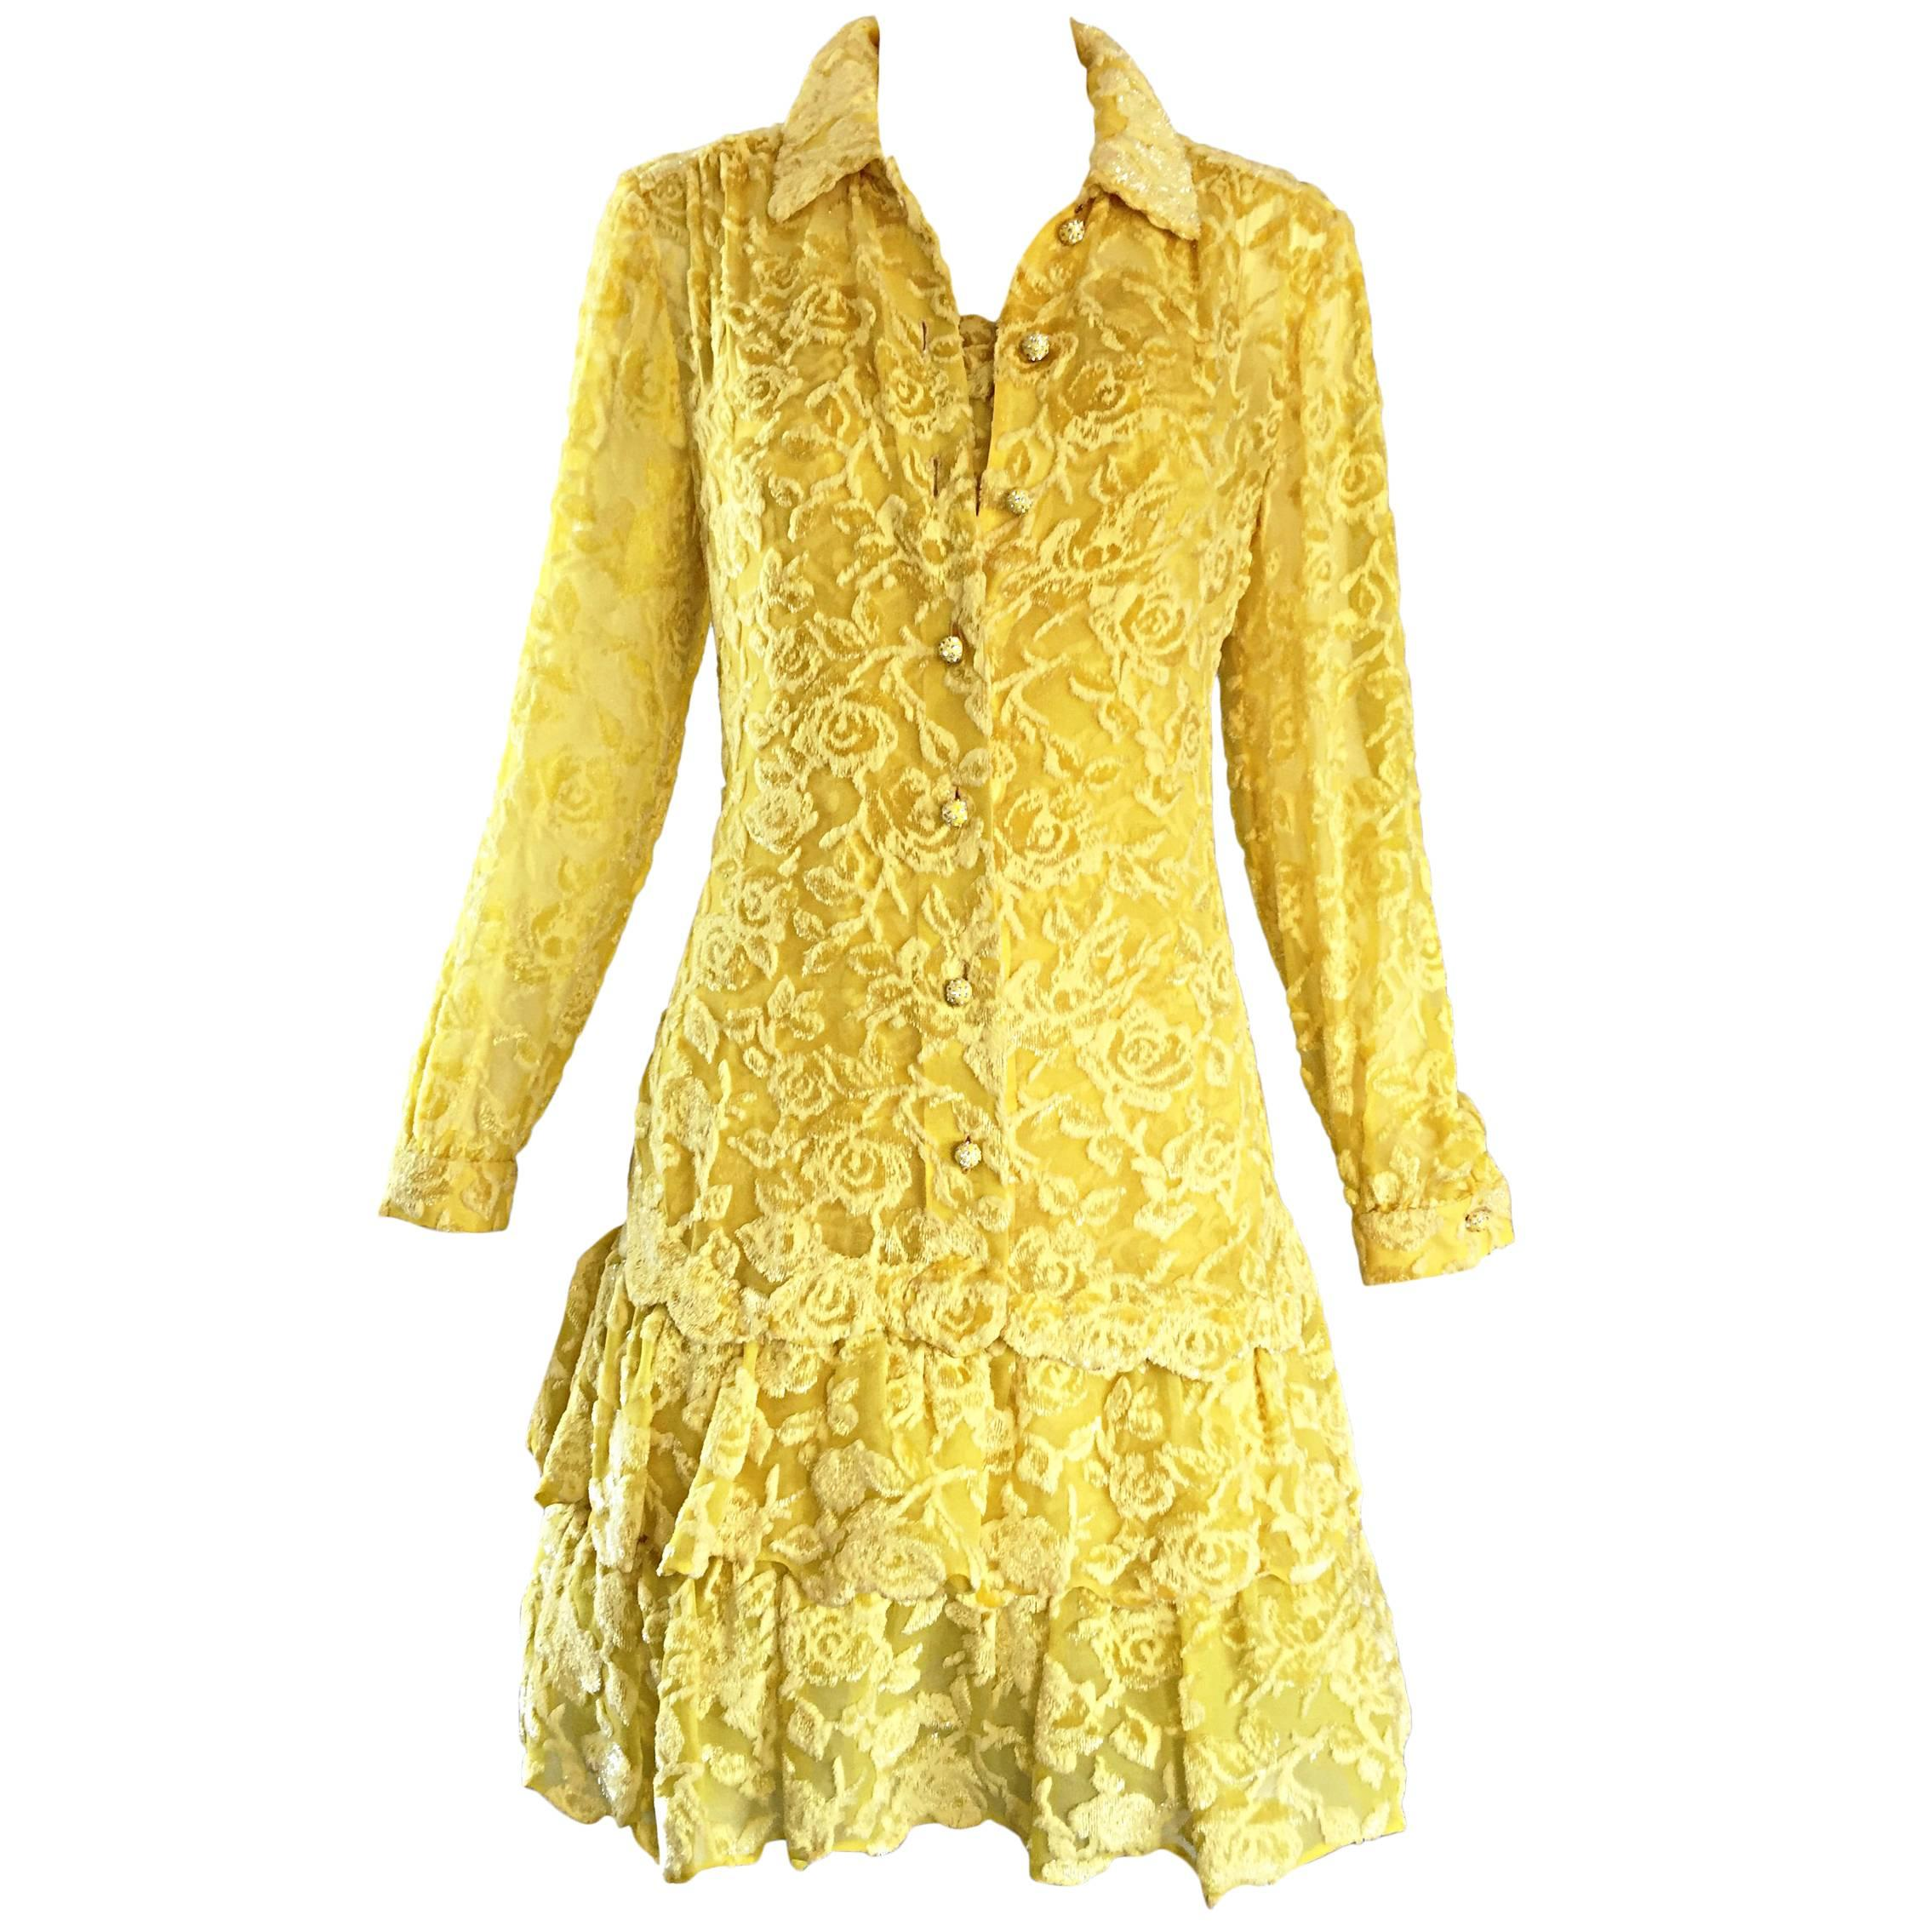 James Galanos Vintage Canary Yellow Silk + Velvet Burn Out Dress and Blouse